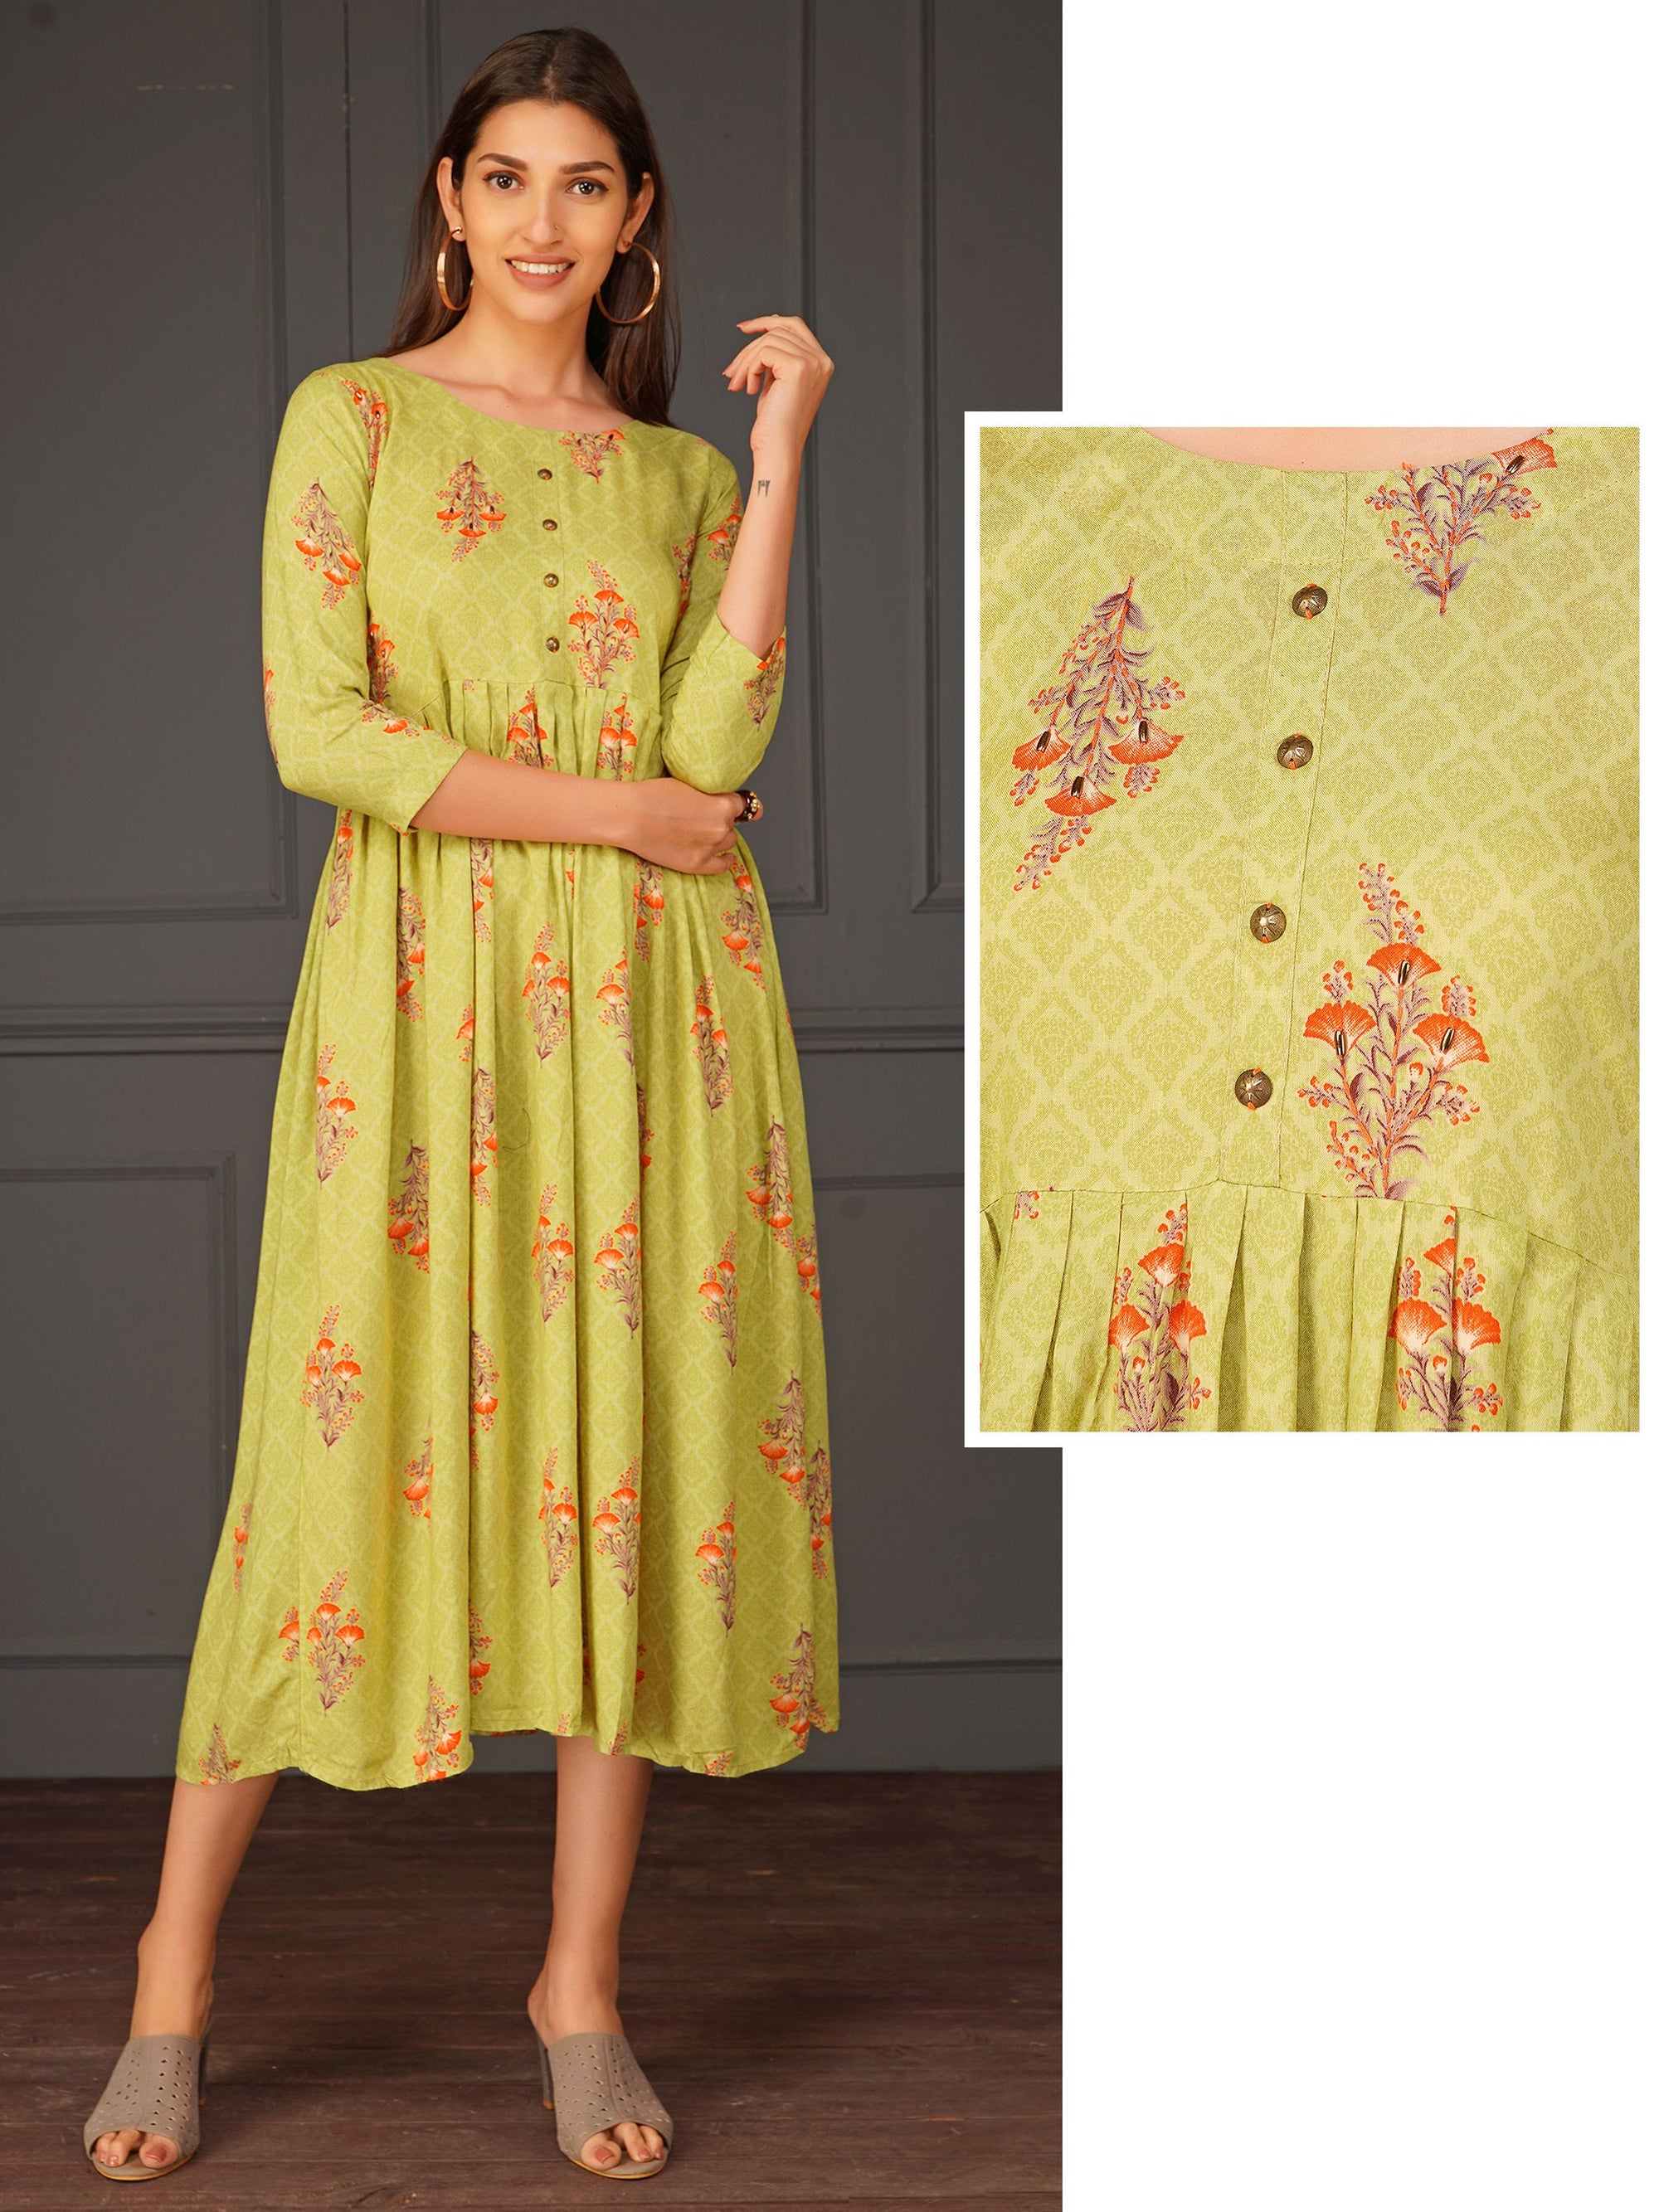 Chic Floral Print With Running Stitch A-line Dress - Green